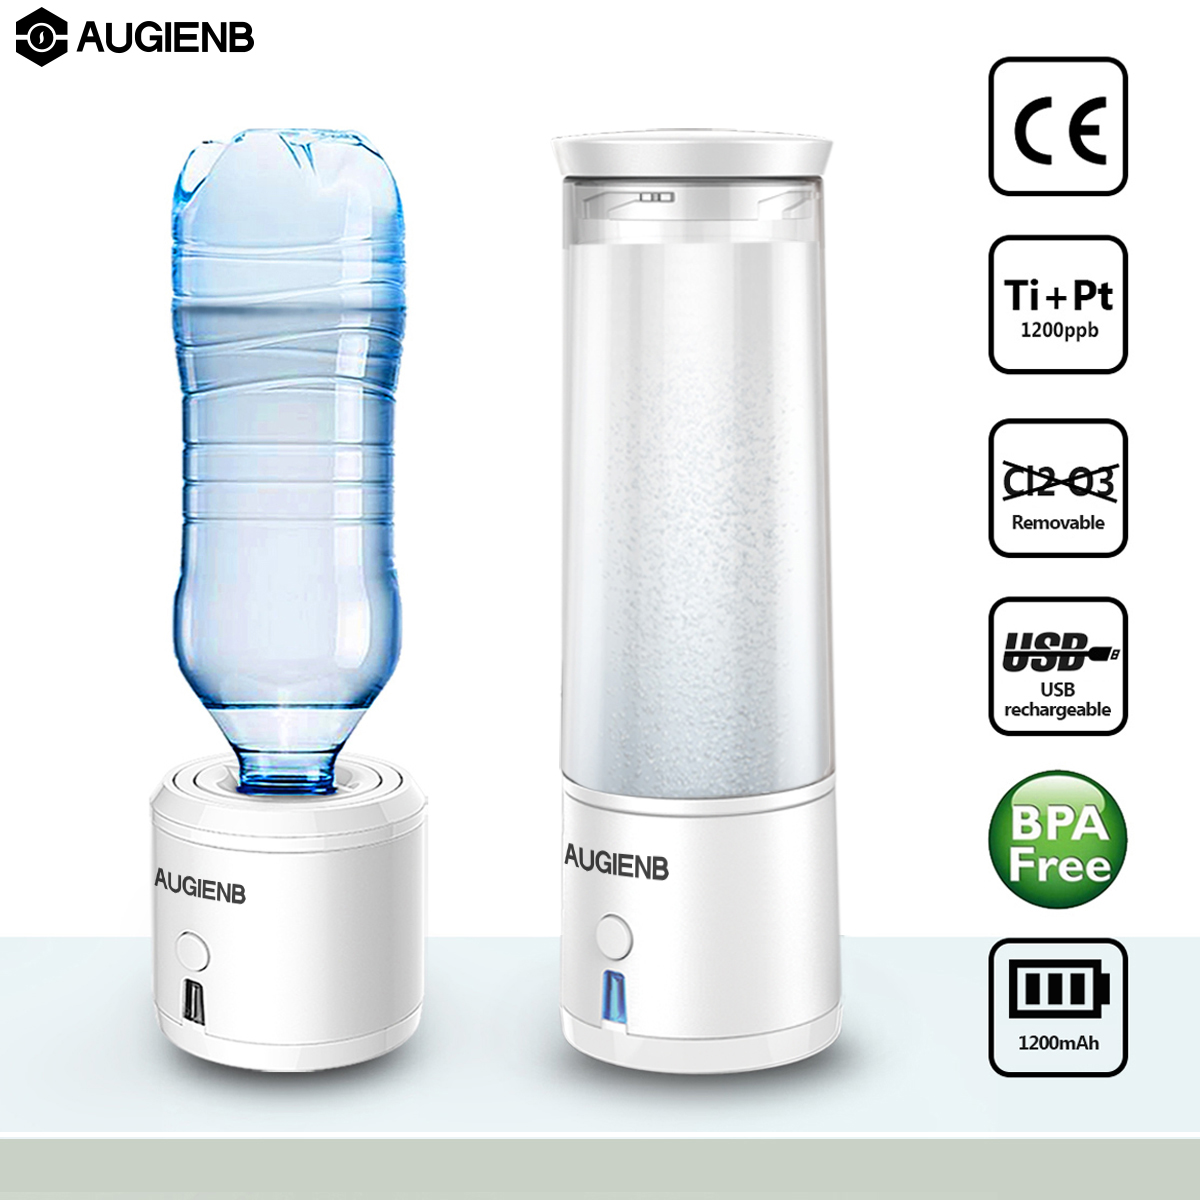 AUGIENB SPE PEM Membrane H2 Rich Hydrogen Water Bottle Electrolysis Ionizer Generator USB Rechargeable removal O3